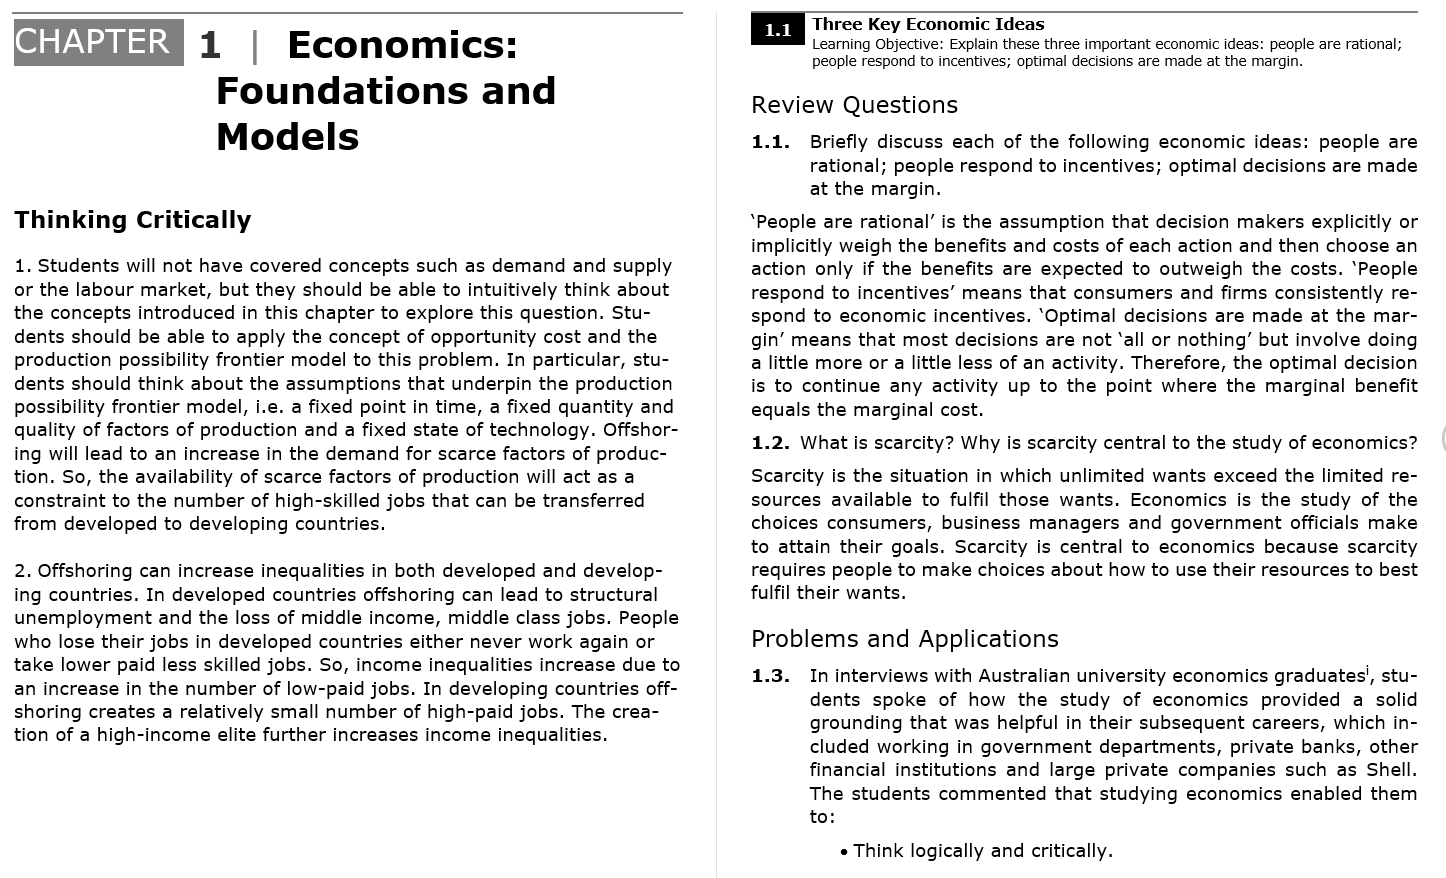 solution manual for Essentials of Economics 3rd Australian Edition的图片 3